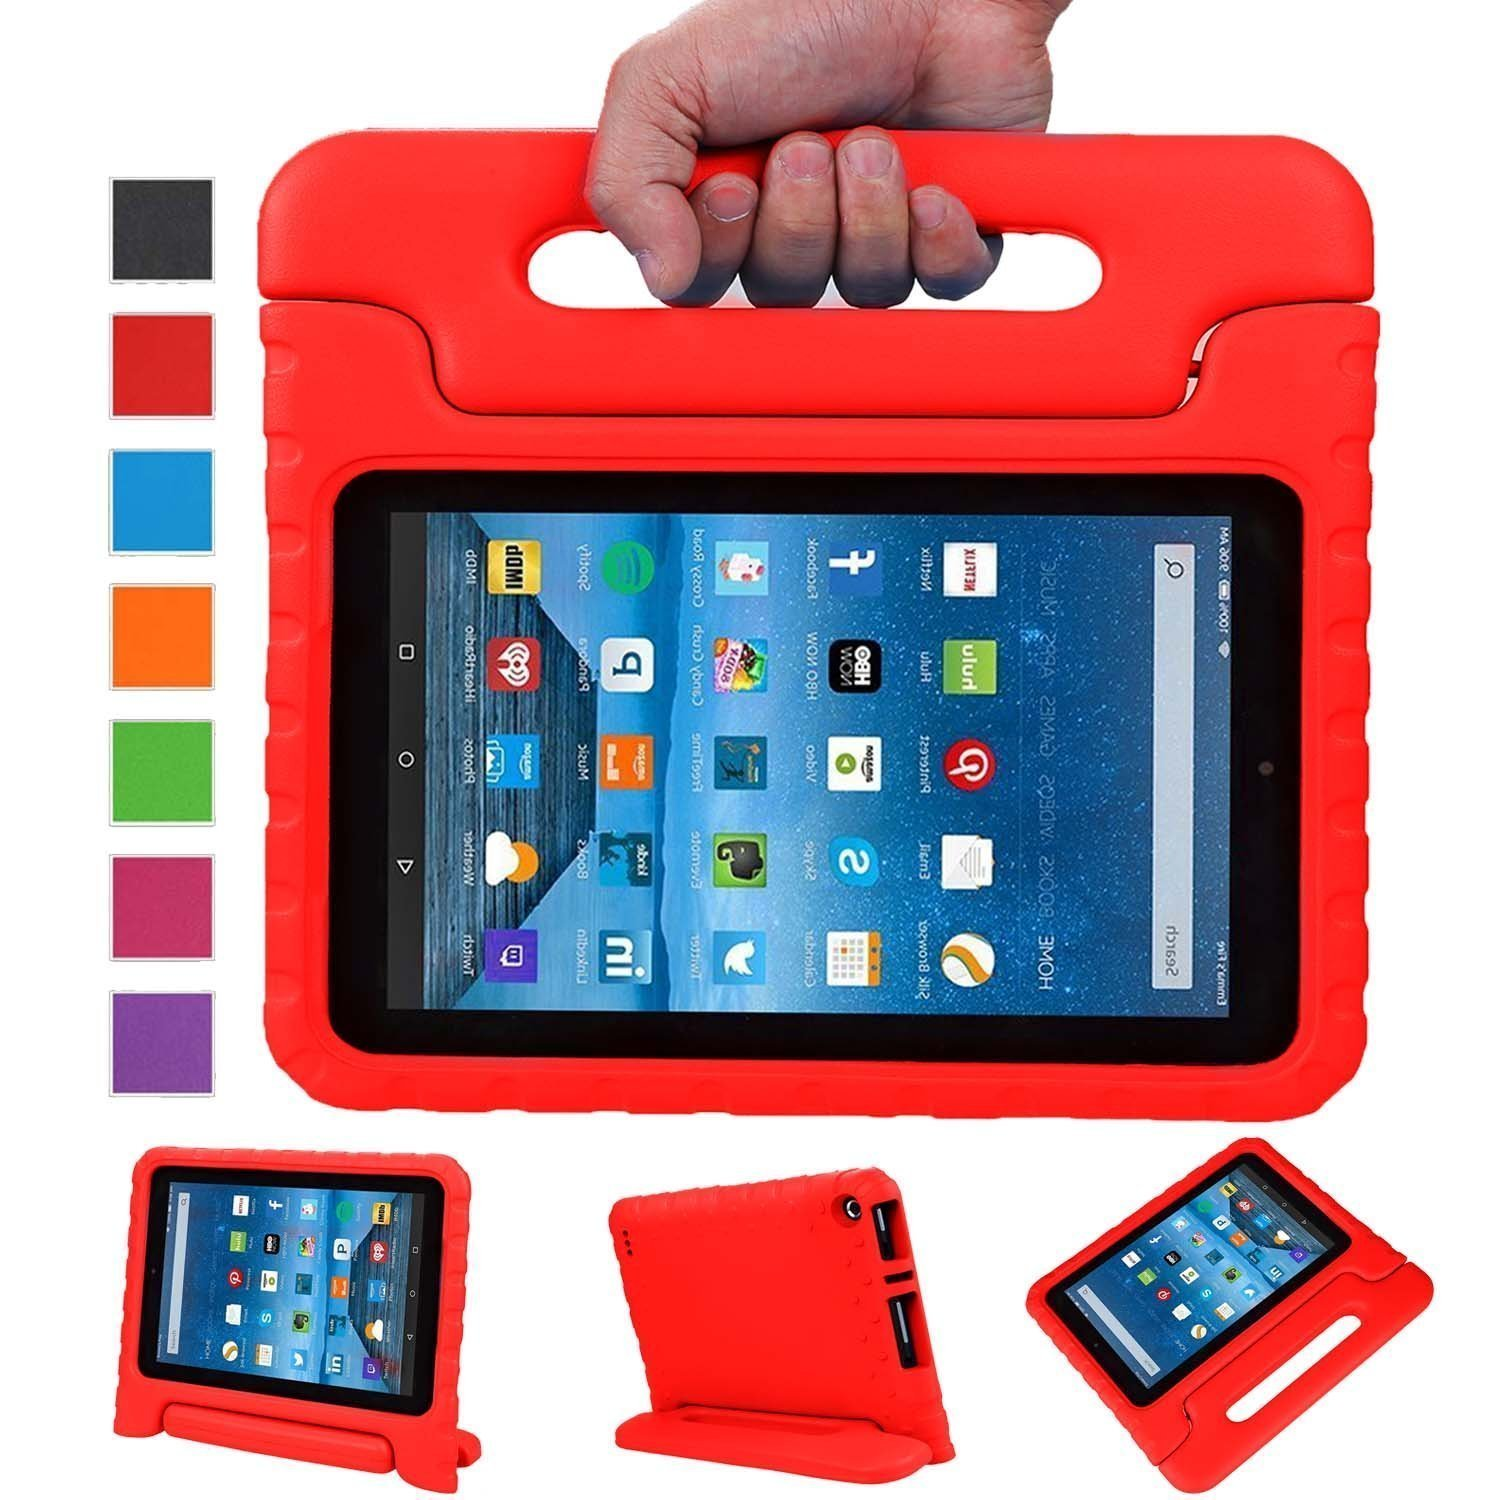 Buy Fire 7 2015 Case - Tinkle ONE Kids Case Shock Proof Convertible